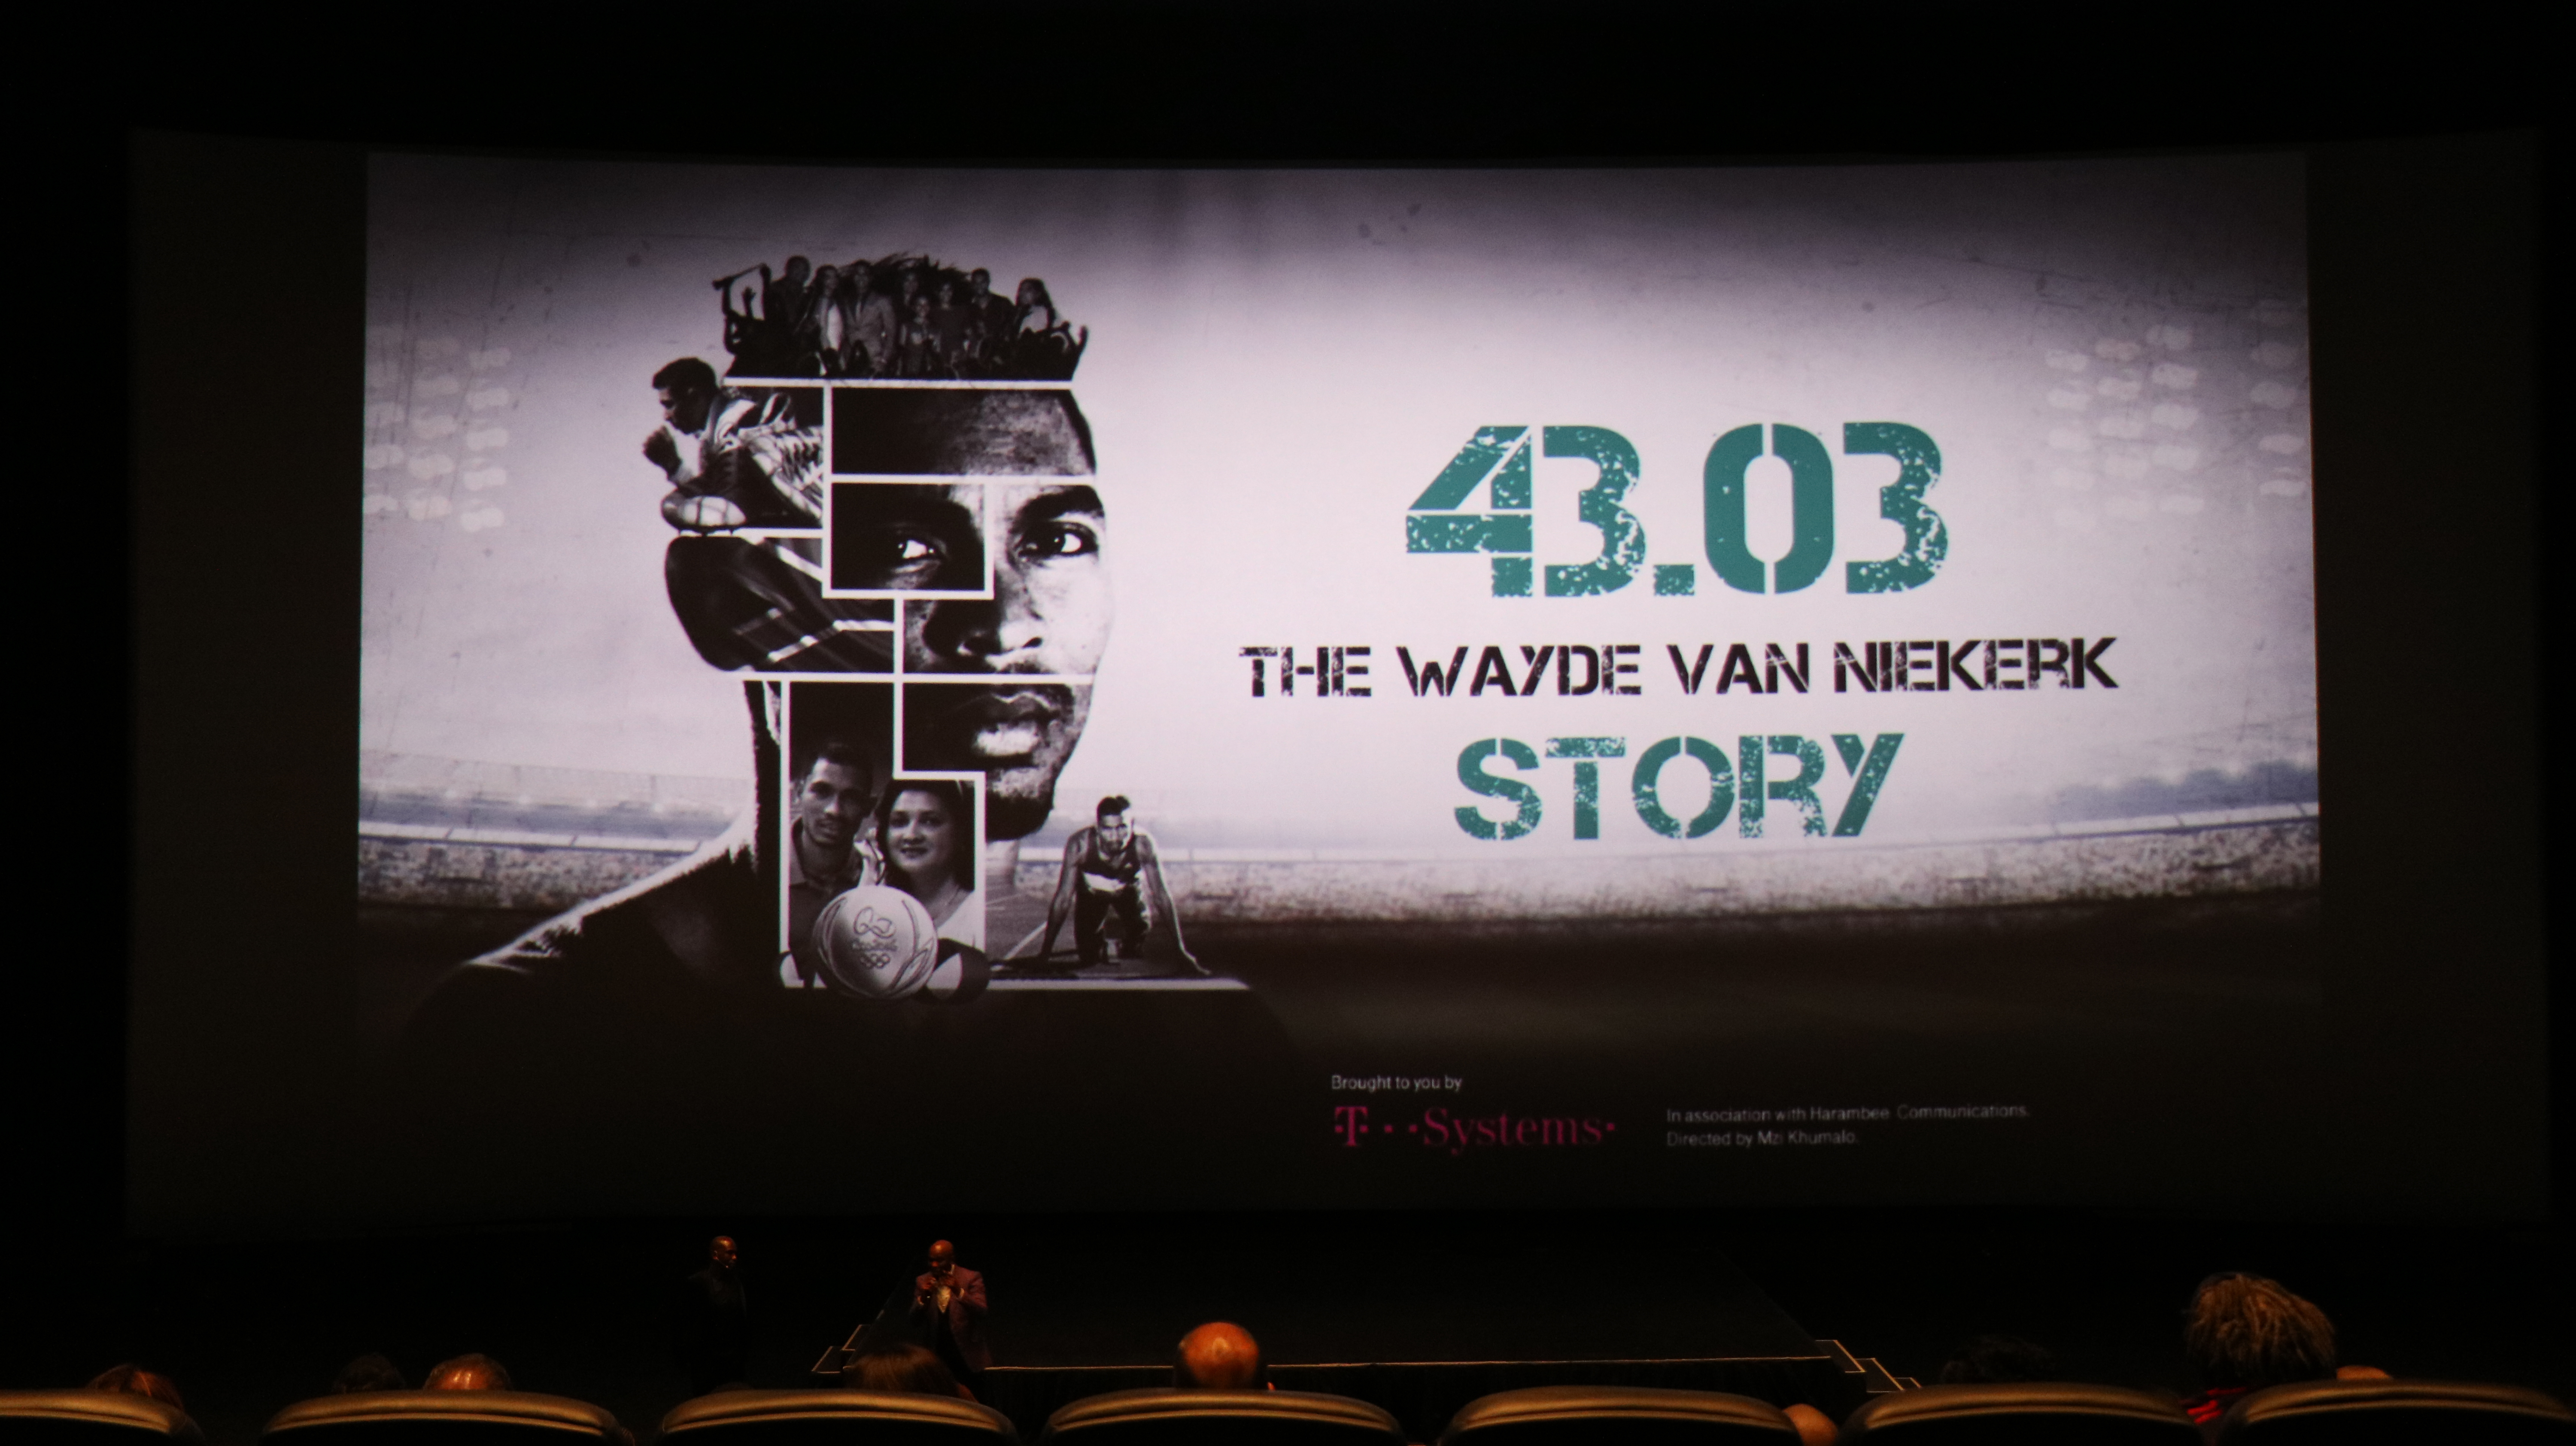 Journalists, sports stars and fans were treated to the launch of the Van Niekerk documentary at